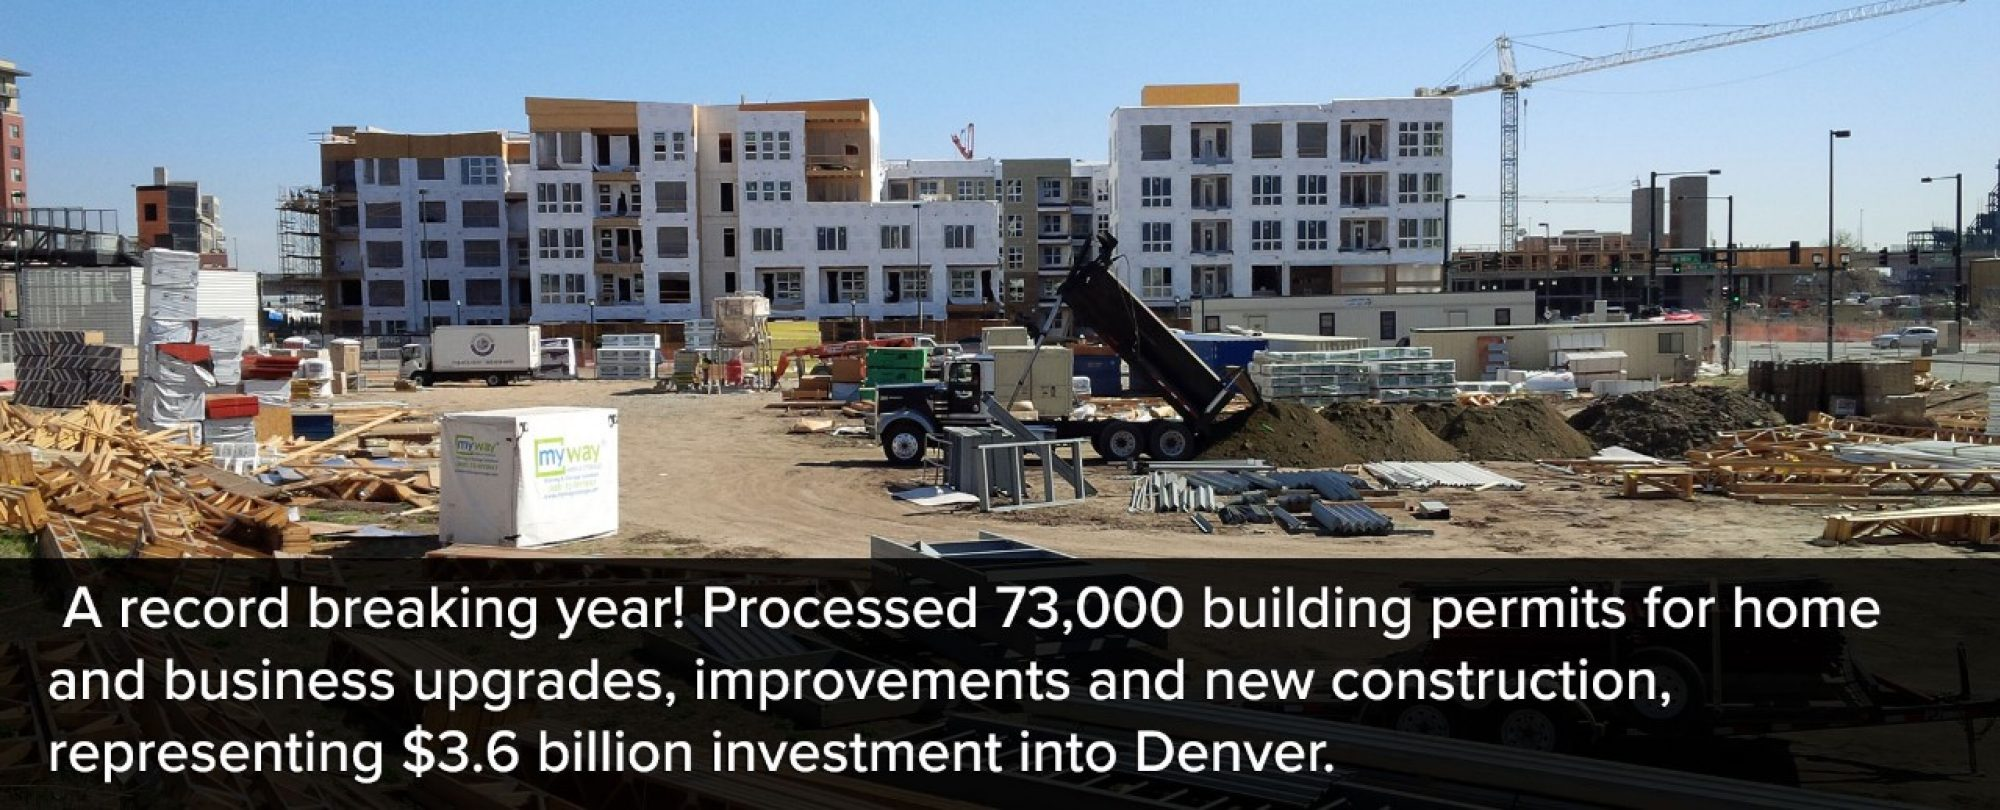 Photo of multi-family construction site. Denver had a record breaking year! The City processed 73,000 building permits for home and business upgrades, improvements, and new construction, representing a $3.6 billion investment into Denver.